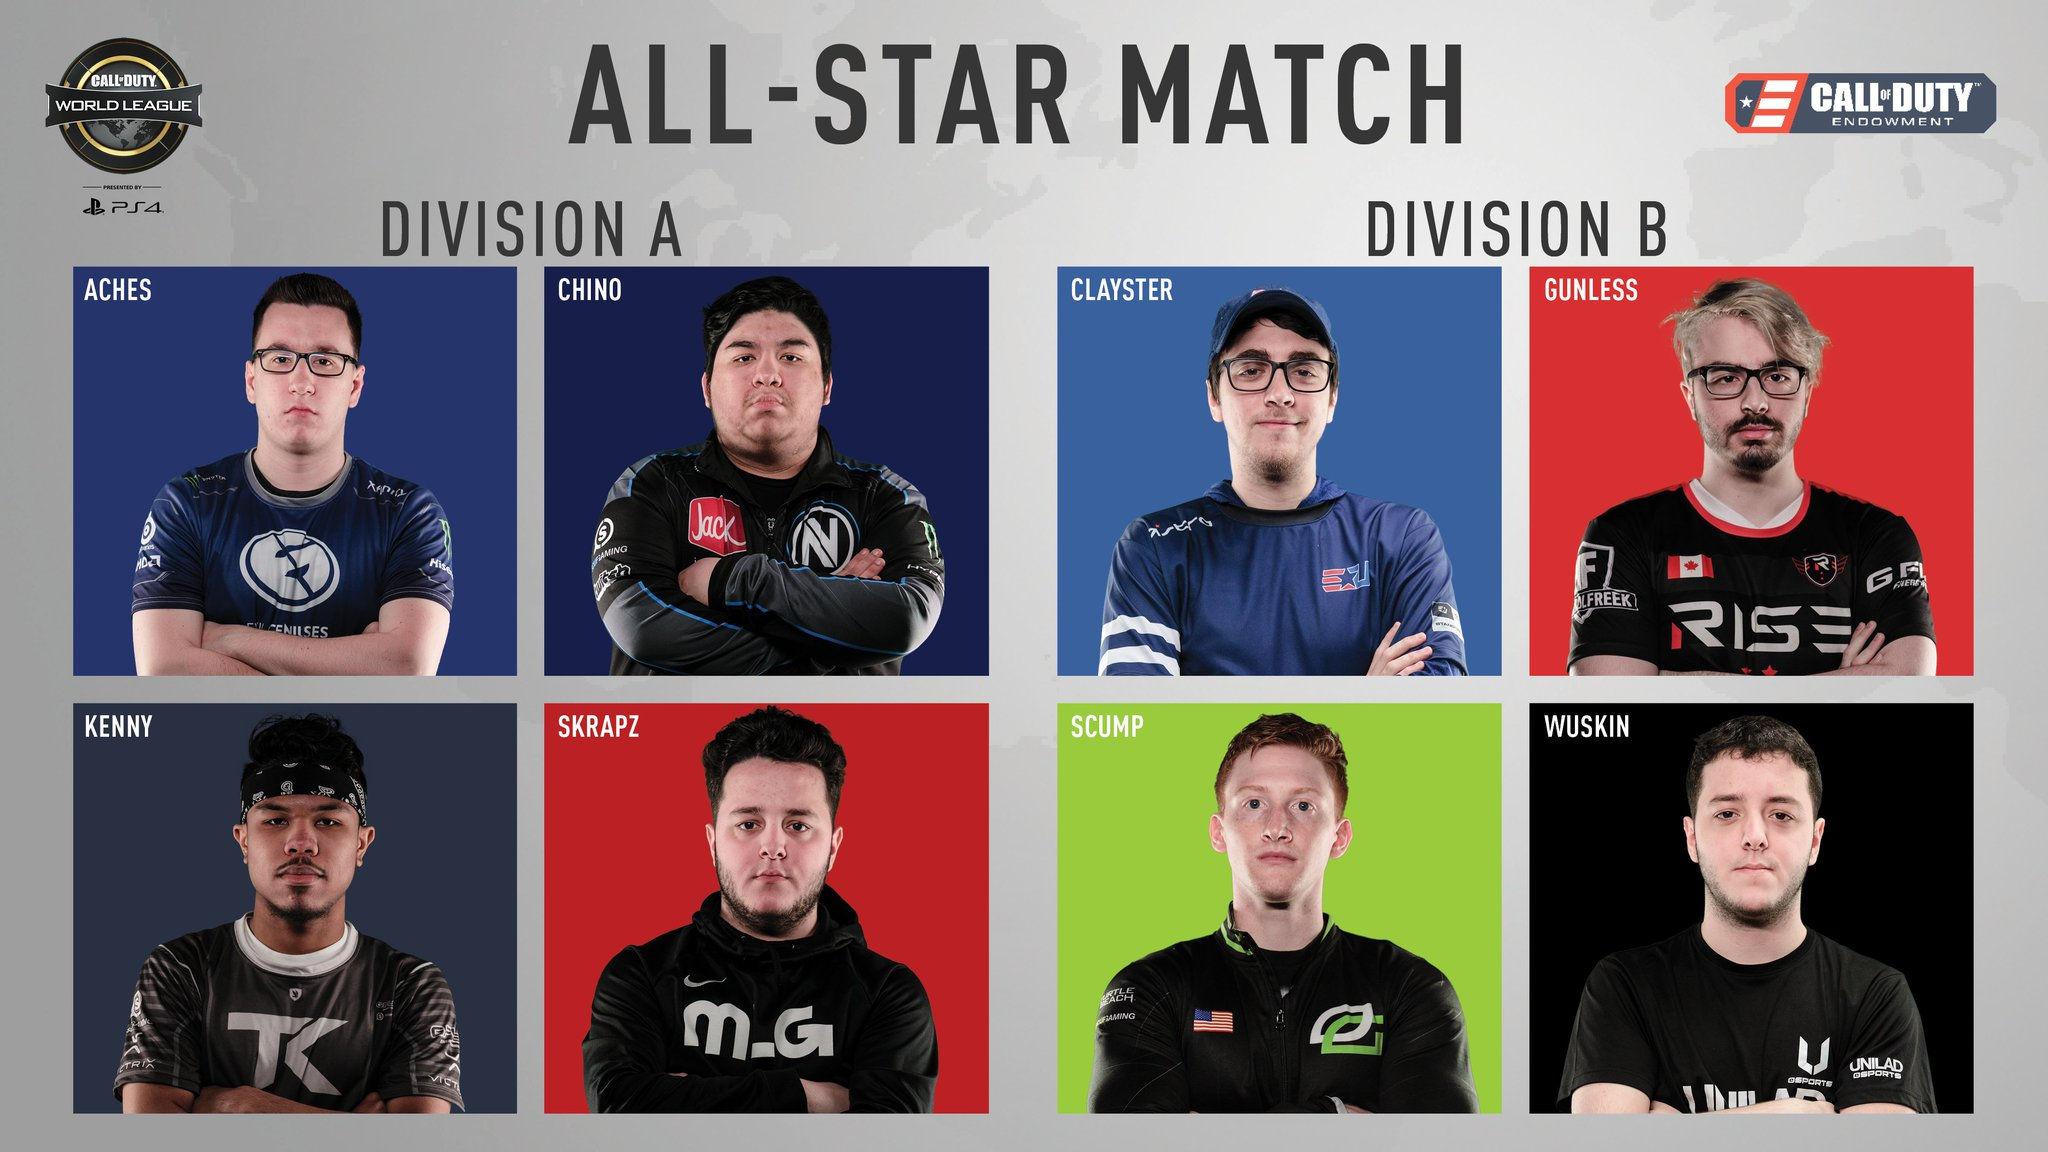 Division A vs Division B ��  Tune in now to the @CODE4Vets #CWLPS4 All-Star Game! https://t.co/NKHQSgV6Gh https://t.co/HmKmbpTrYE